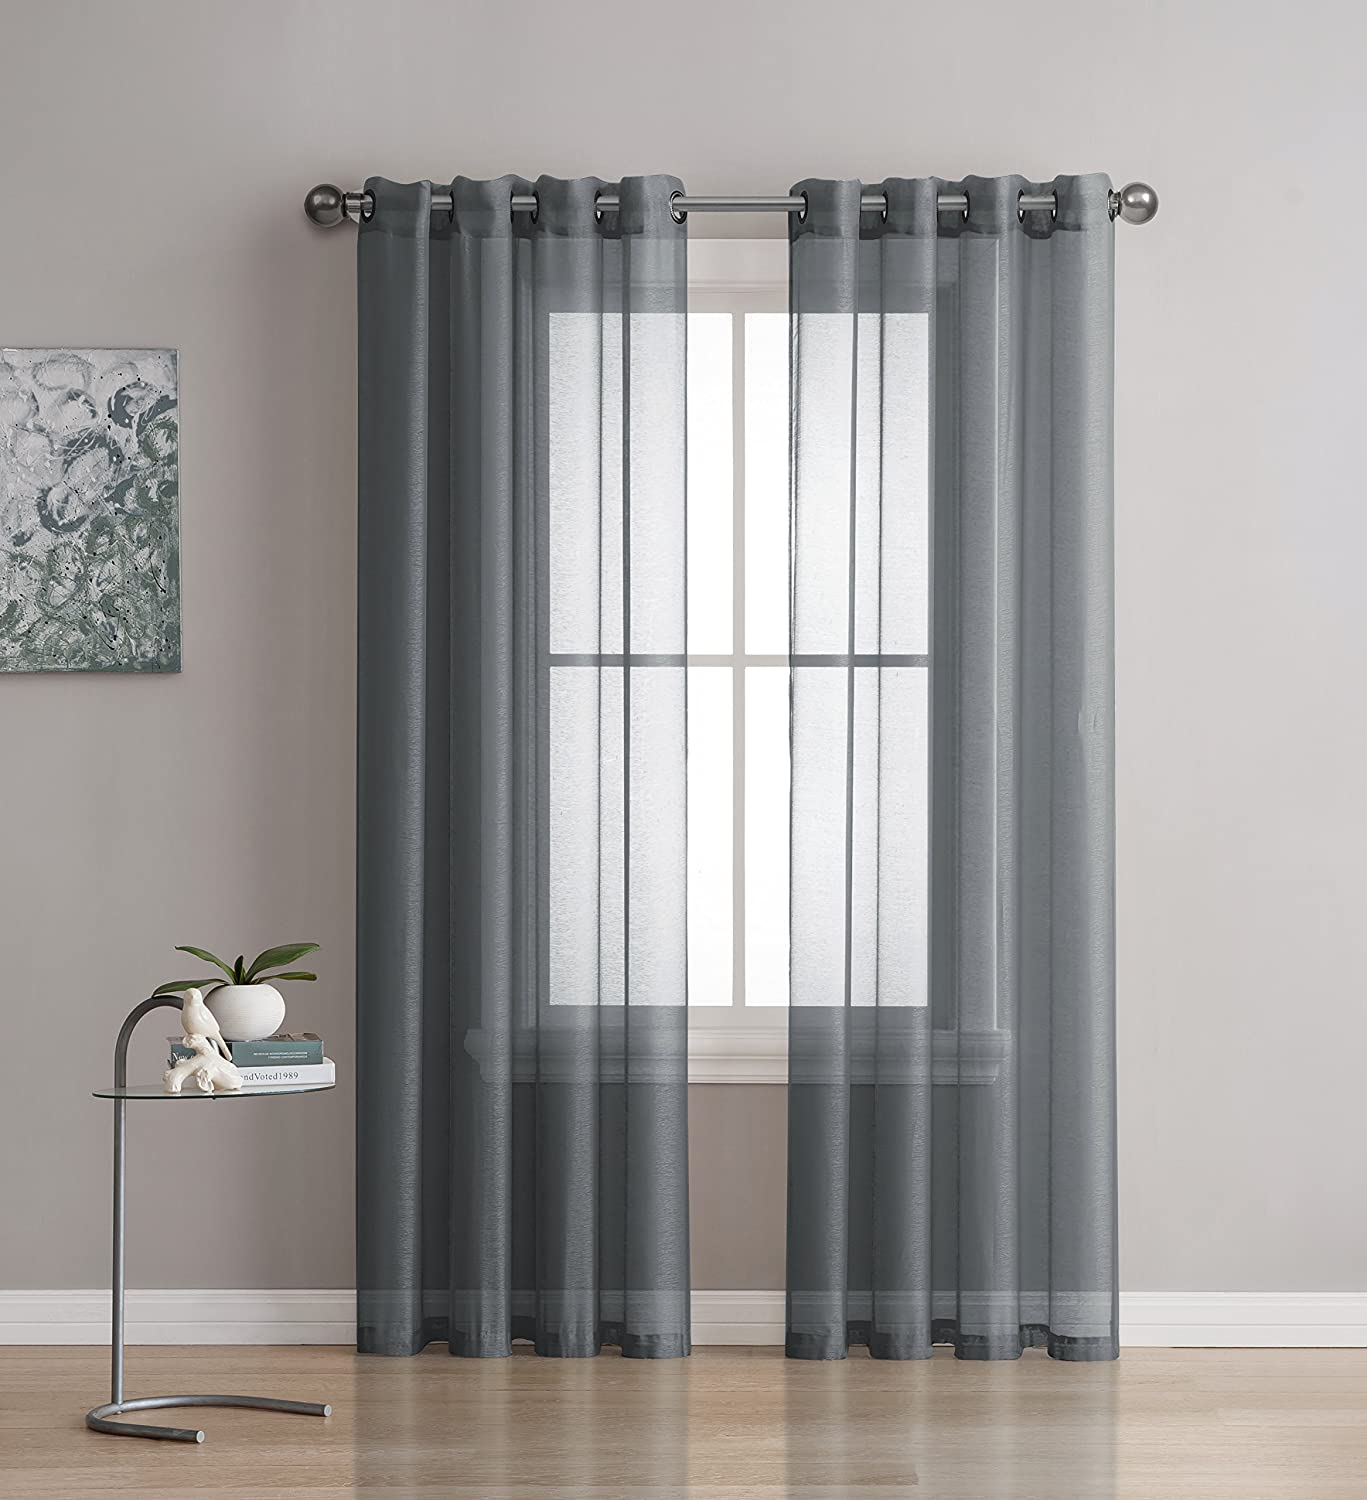 Grommet Semi-Sheer Curtains - 2 Pieces